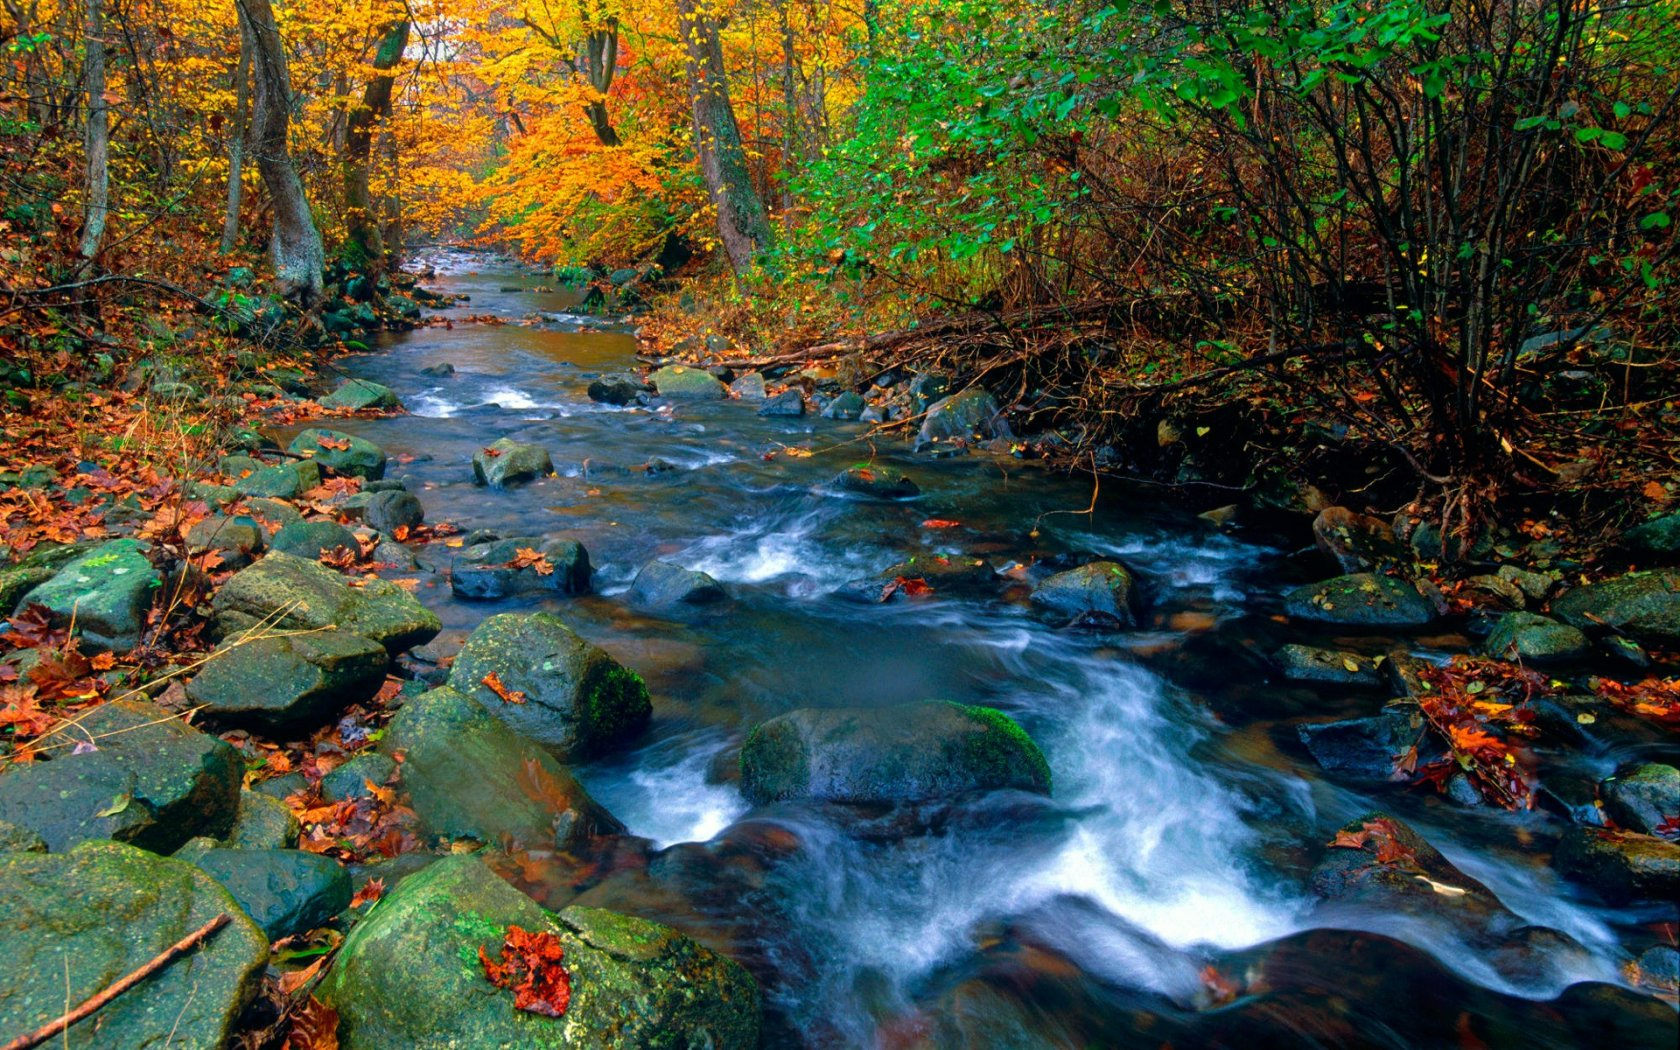 Nature Wallpaper Autumn Fall 1600x1200 Blue Ridge Stream Shenandoah National Park Virginia Forest